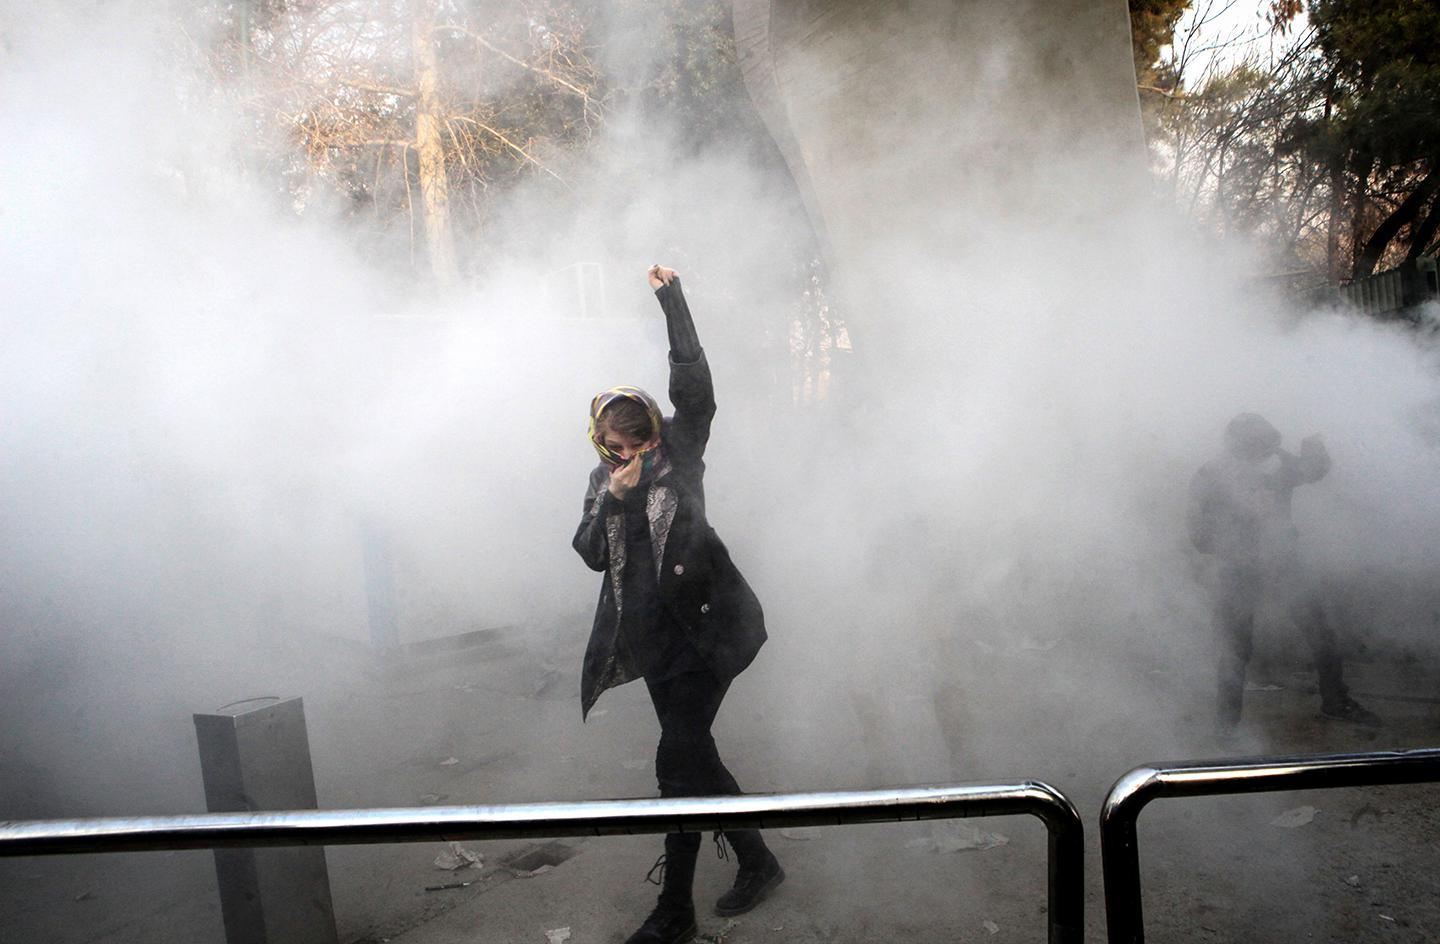 An Iranian woman raises her fist amid the smoke of tear gas at the University of Tehran during a protest driven by anger over economic problems, in the capital Tehran on December 30, 2017. Students protested in a third day of demonstrations sparked by anger over Iran's economic problems, videos on social media showed, but were outnumbered by counter-demonstrators.